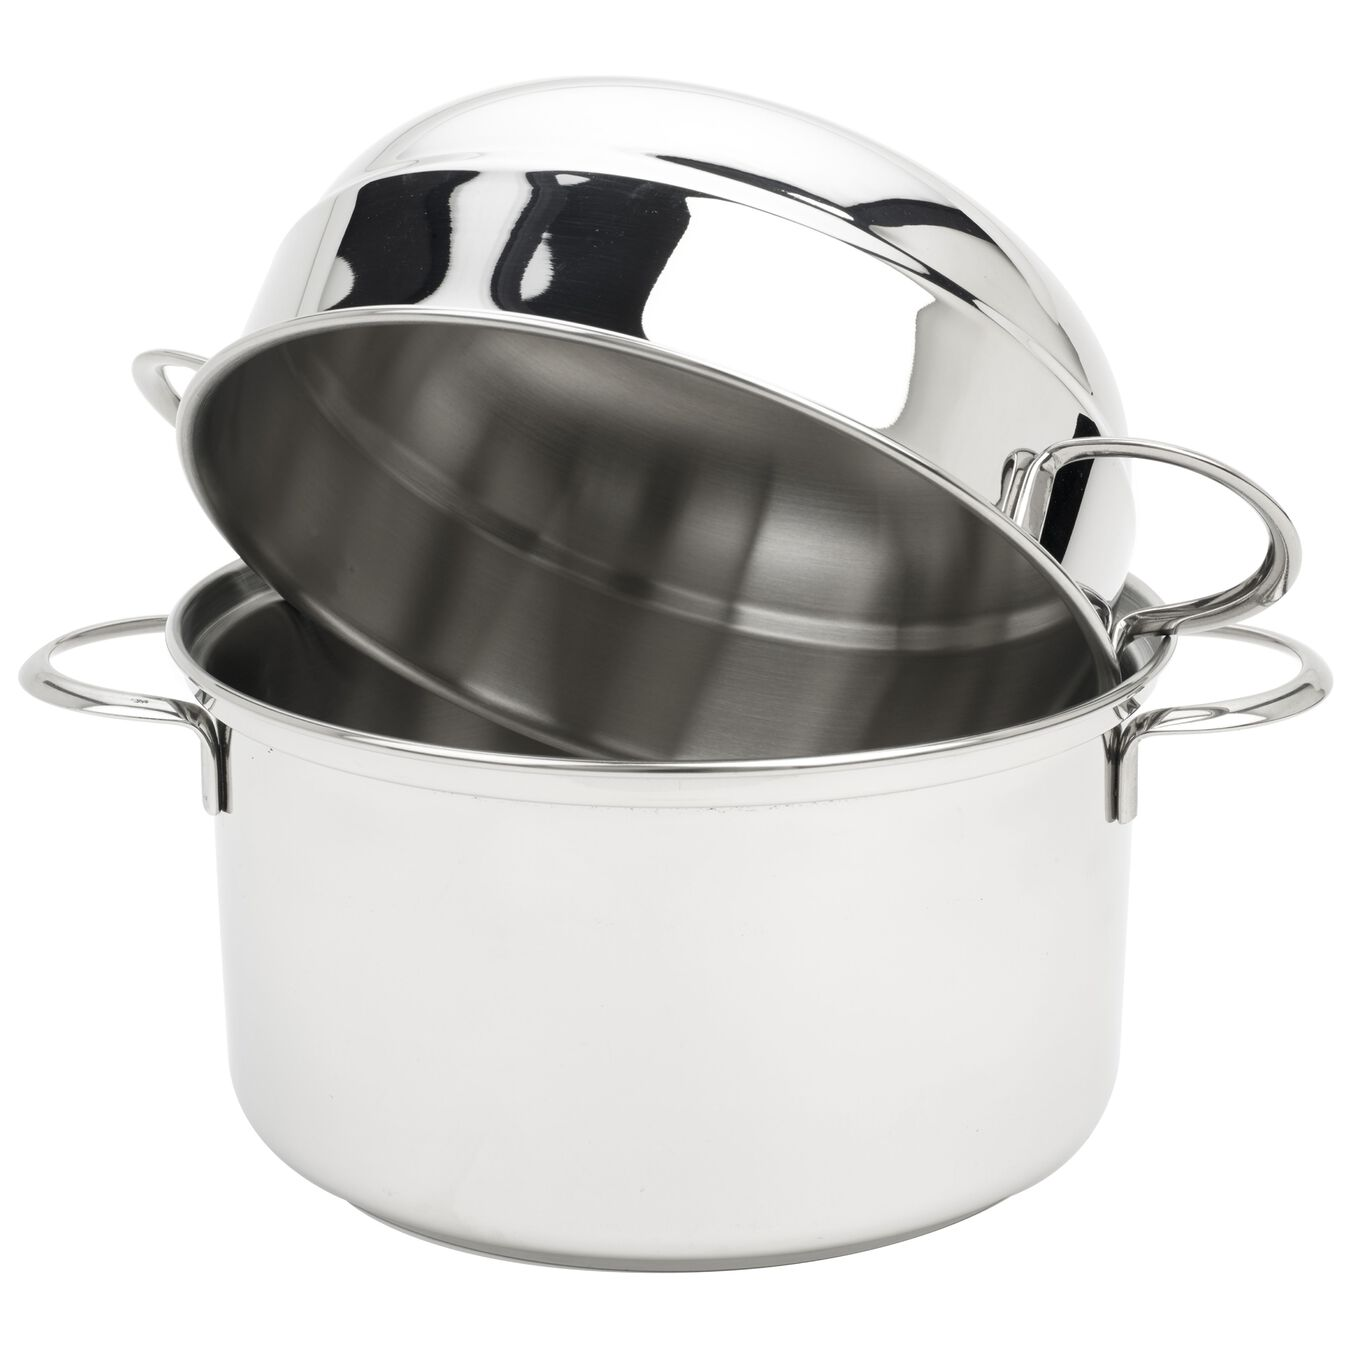 3 l 18/10 Stainless Steel round Moulière, Silver,,large 2